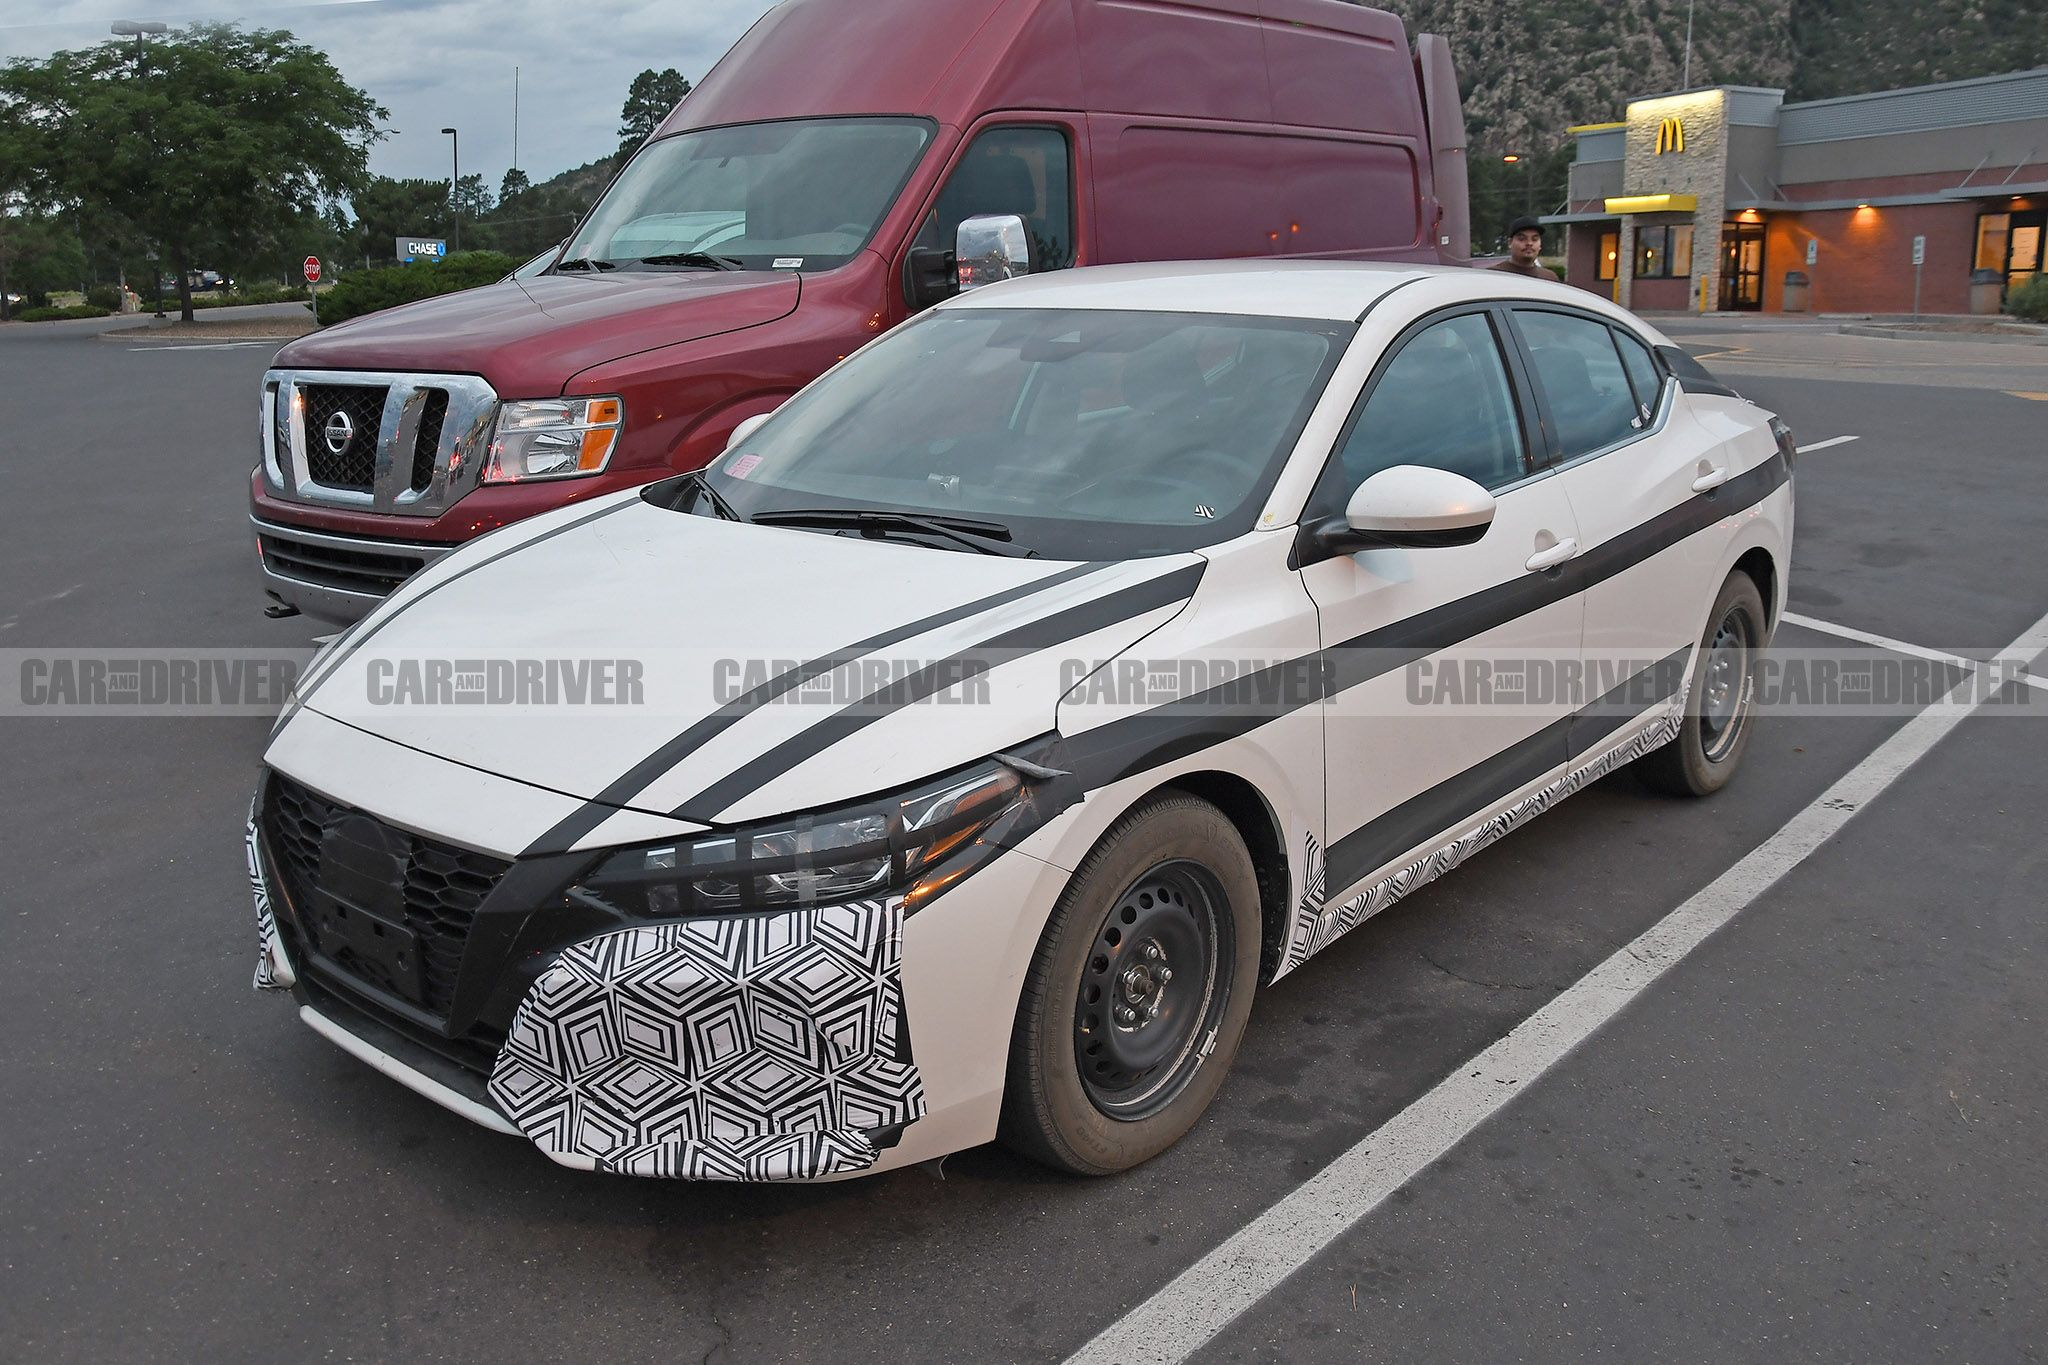 Nissan Sentra 2020 Review.2020 Nissan Sentra Spied In Base Form With A Manual Transmission